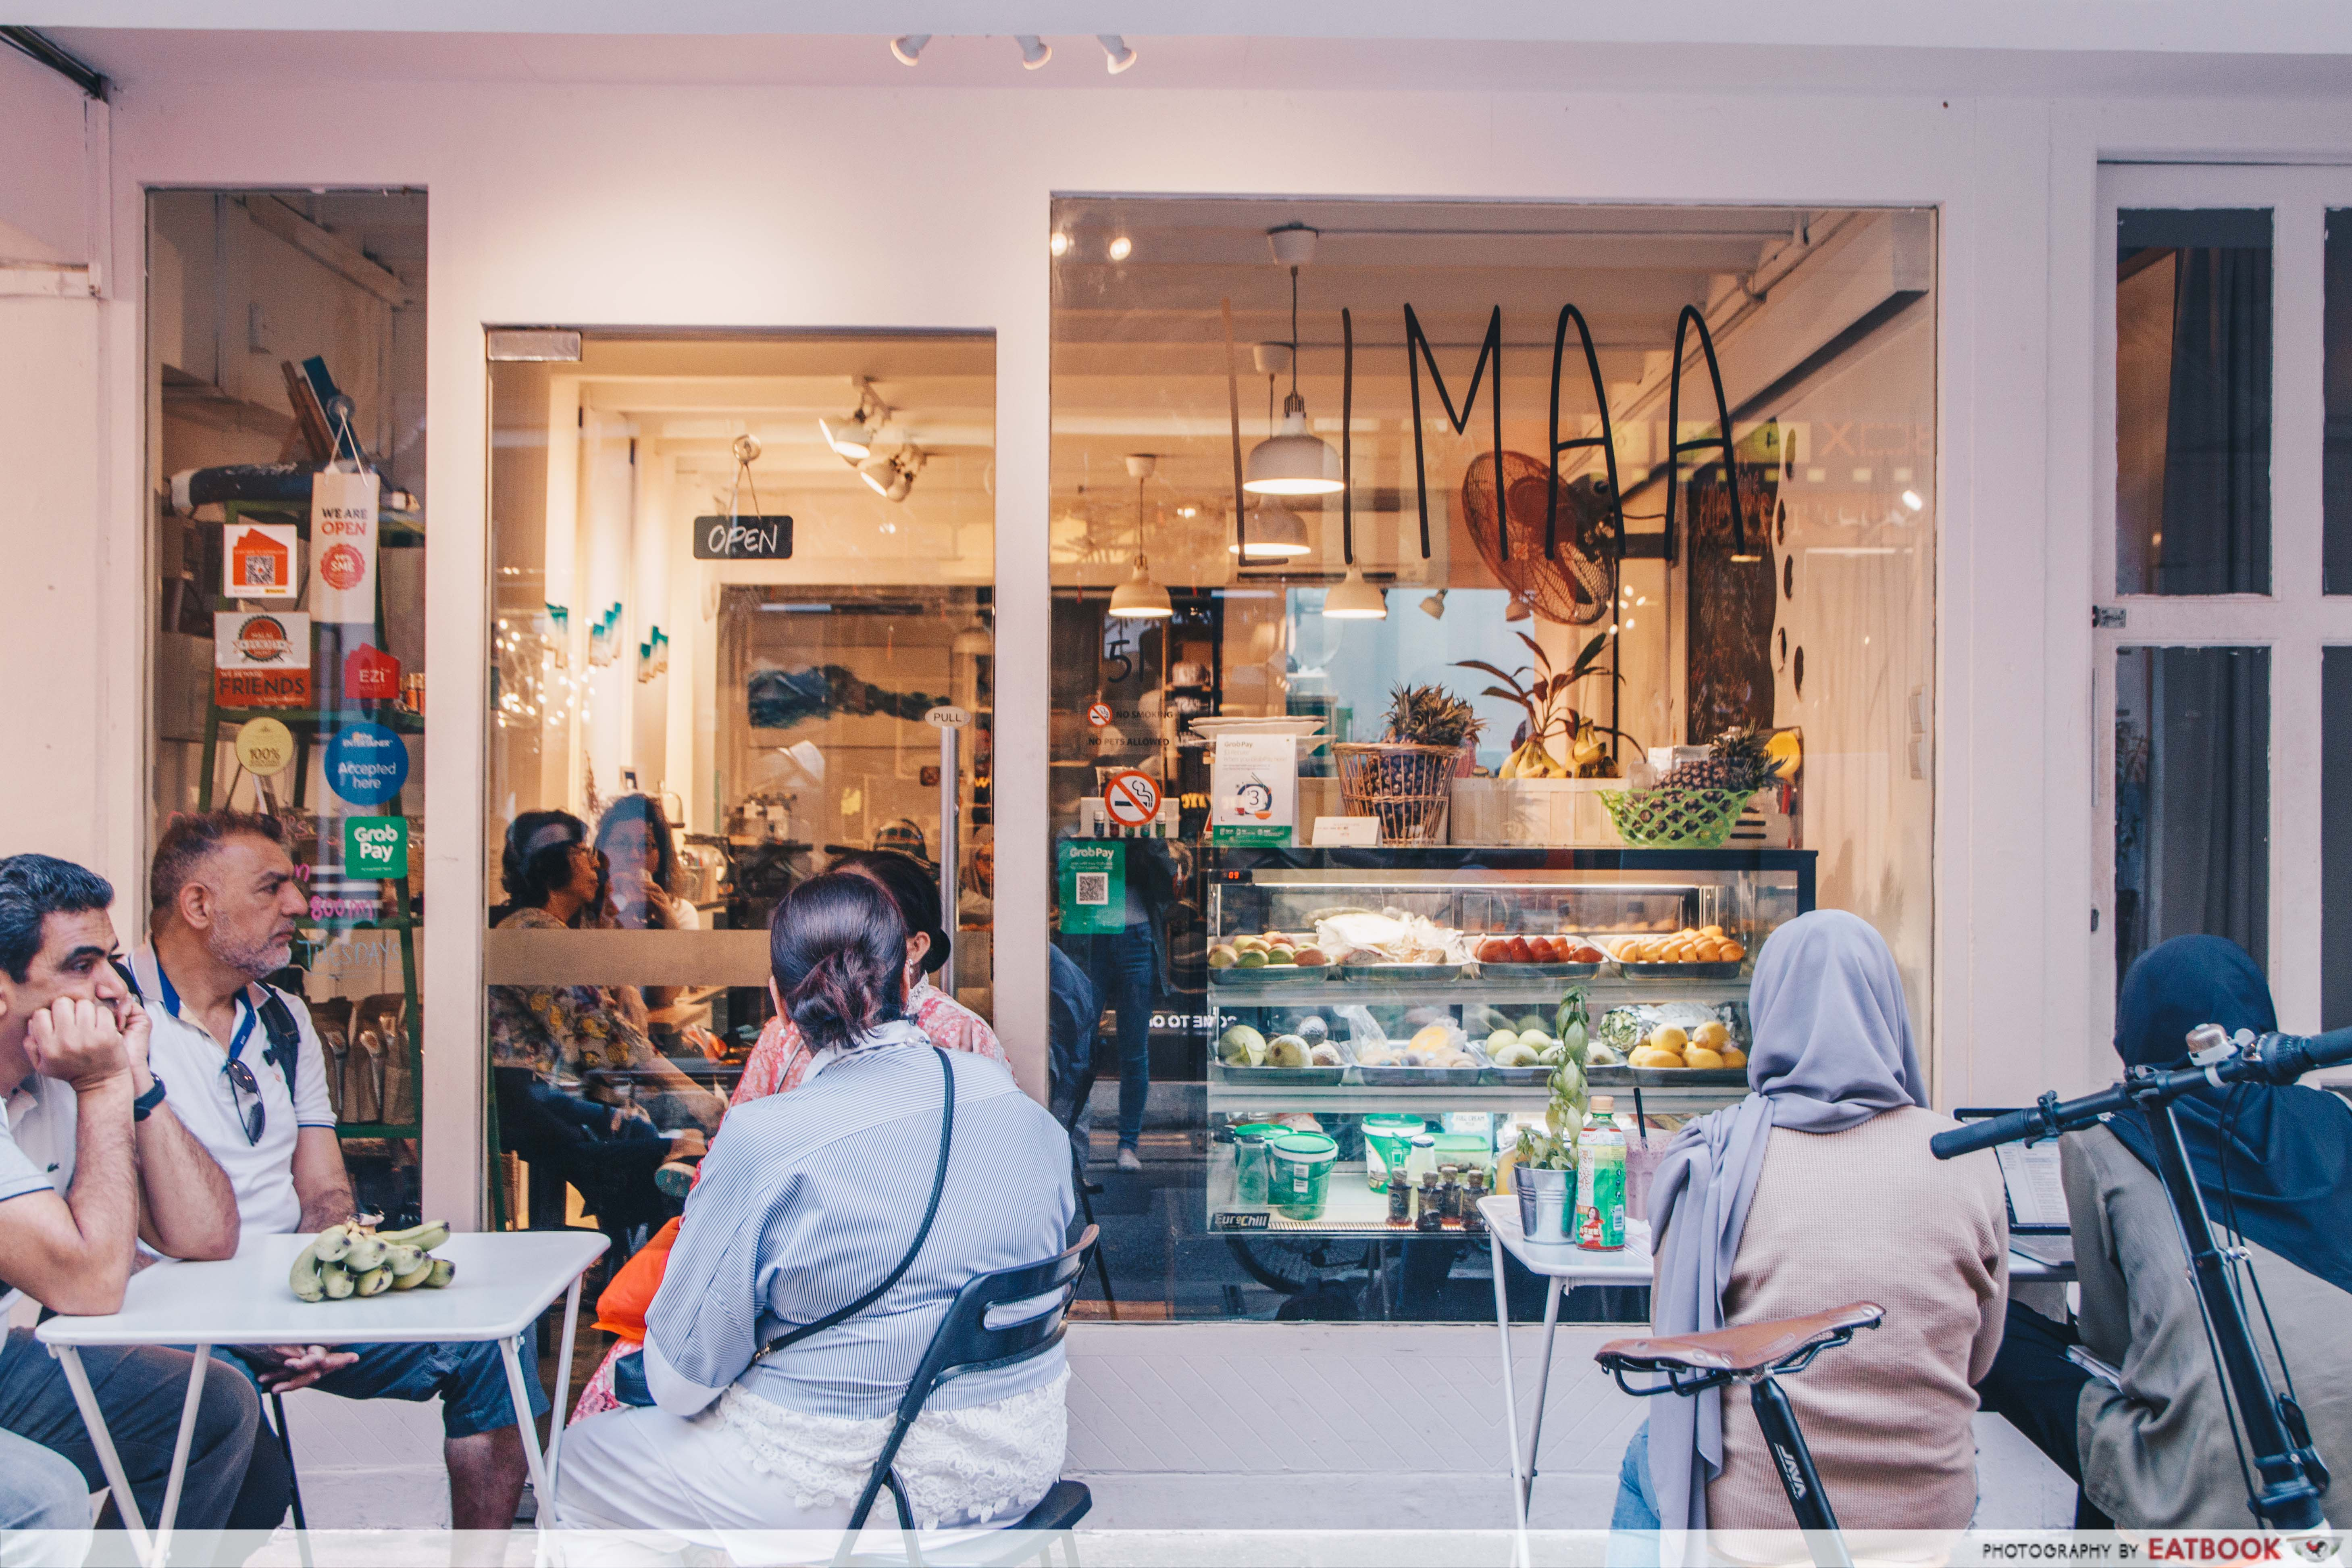 Limaa - Storefront